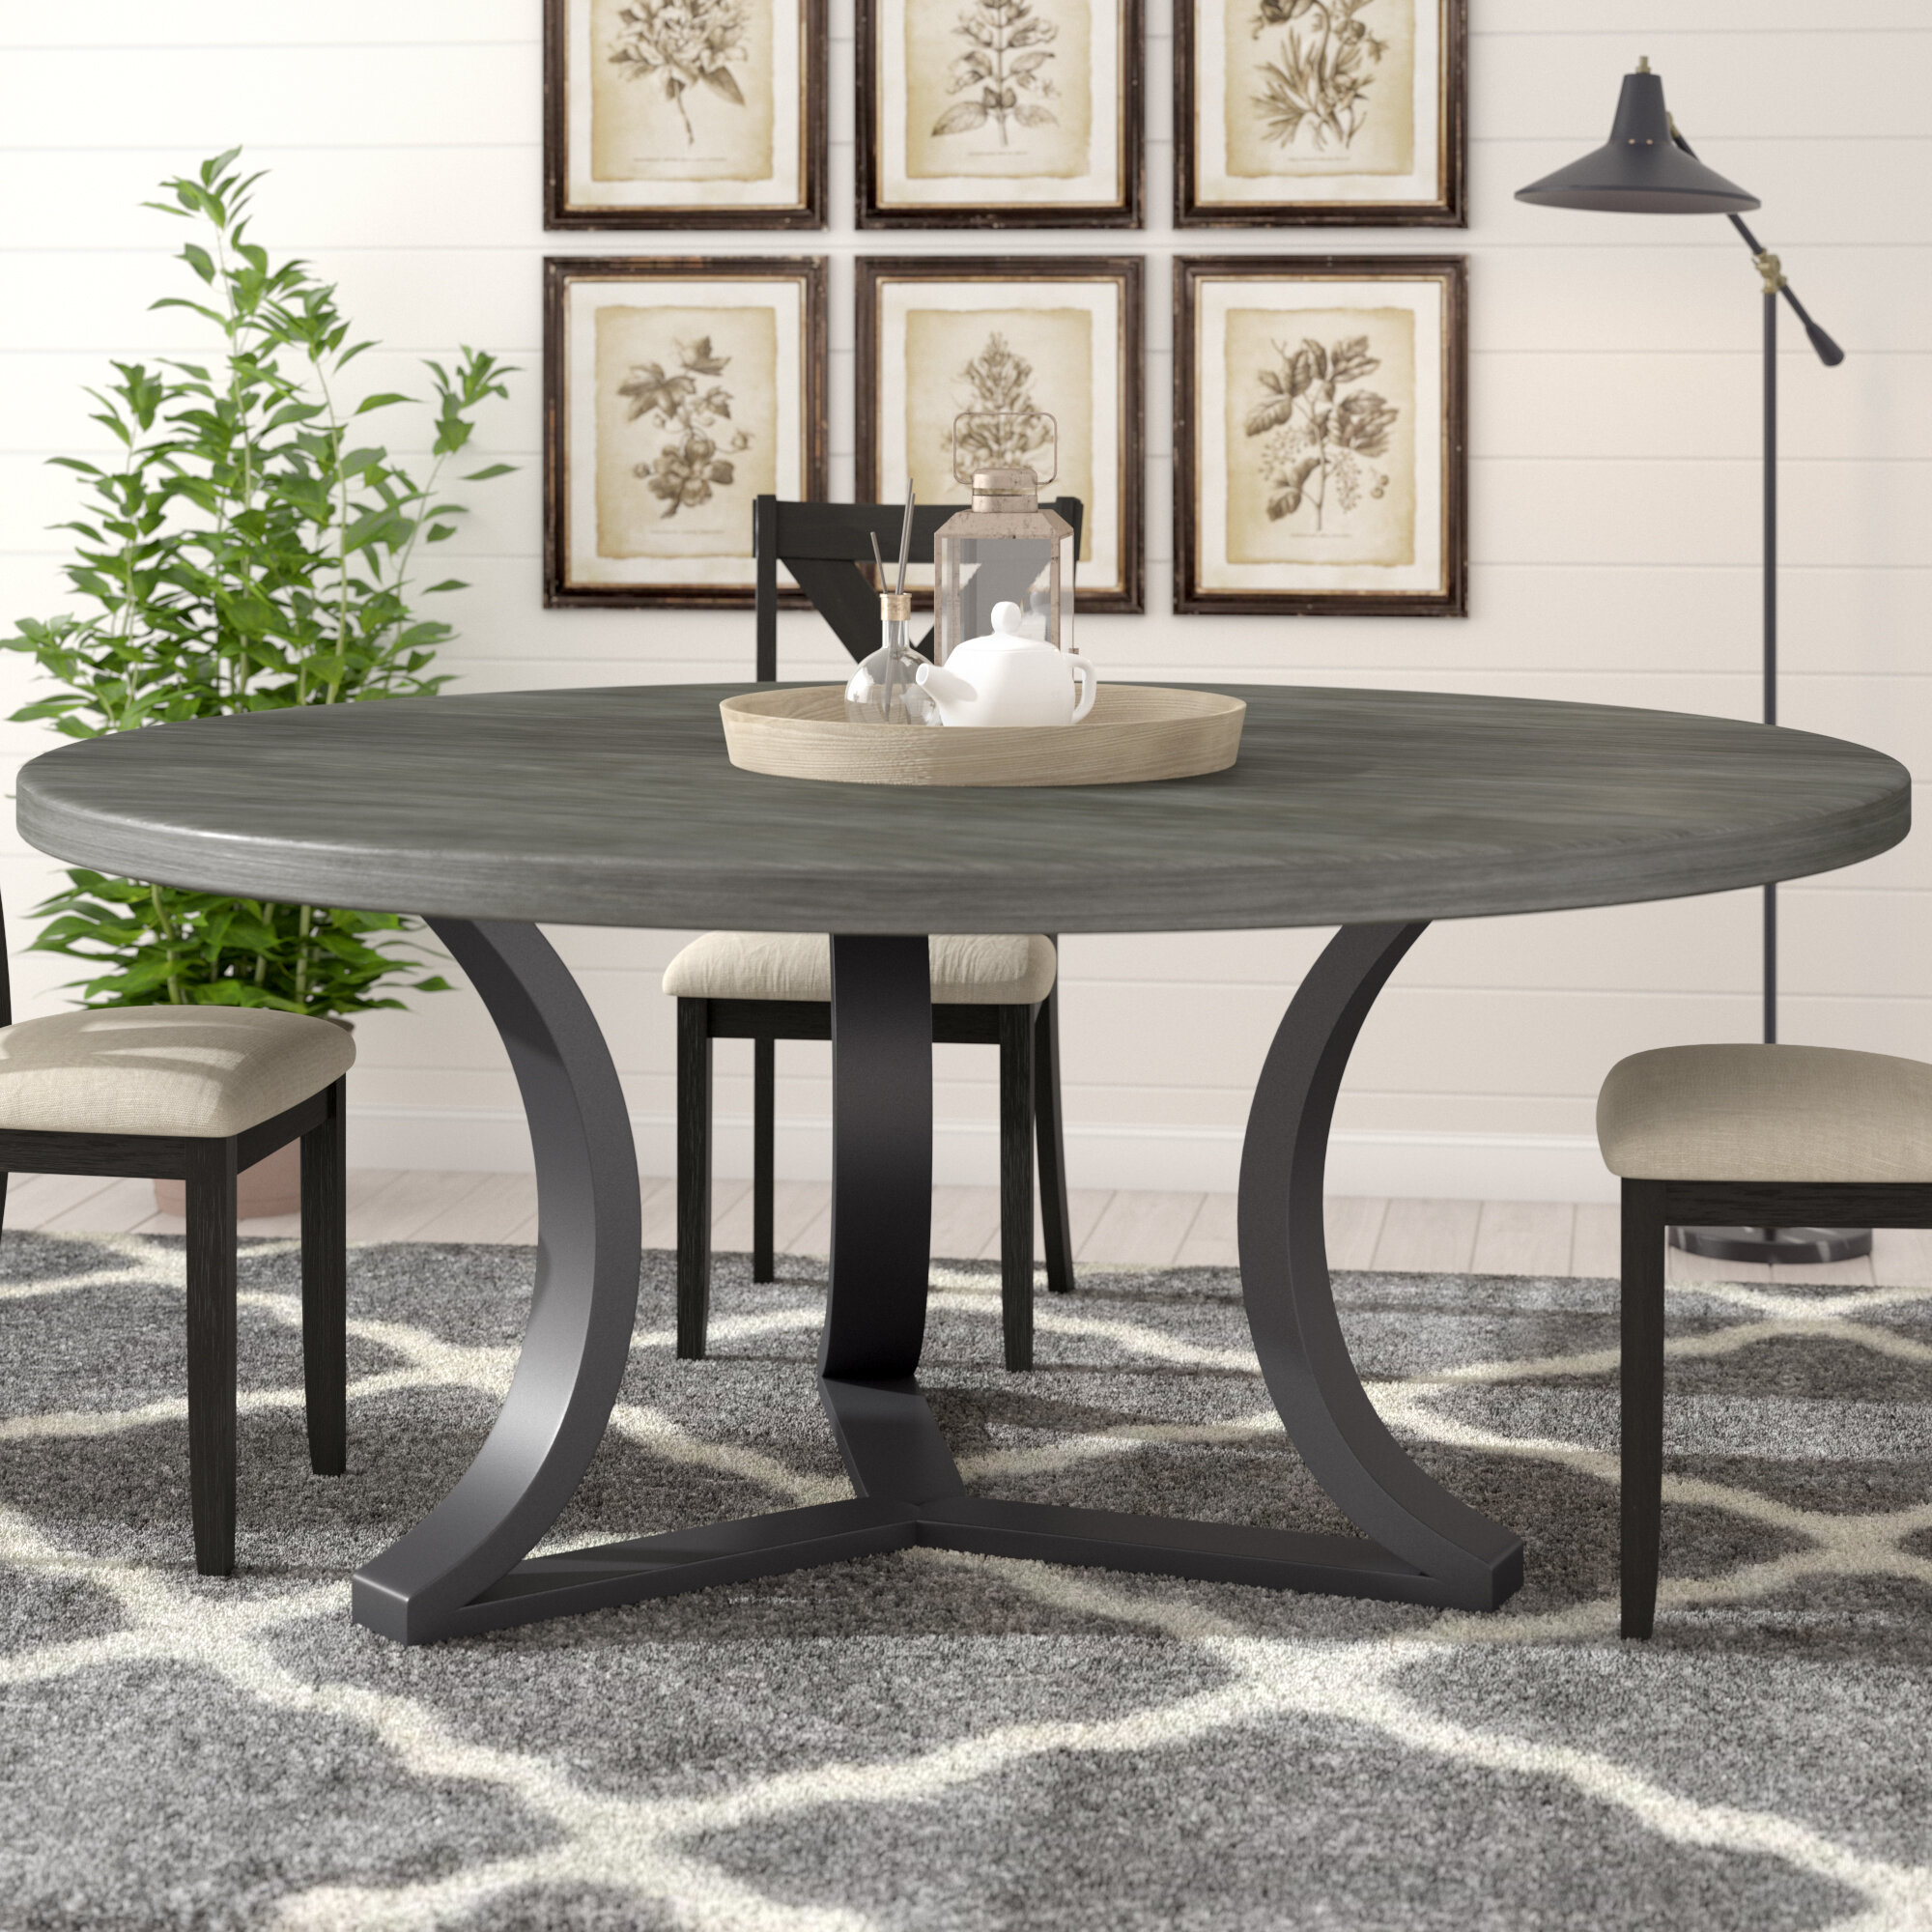 Gracie oaks louisa rounded dining table reviews wayfair